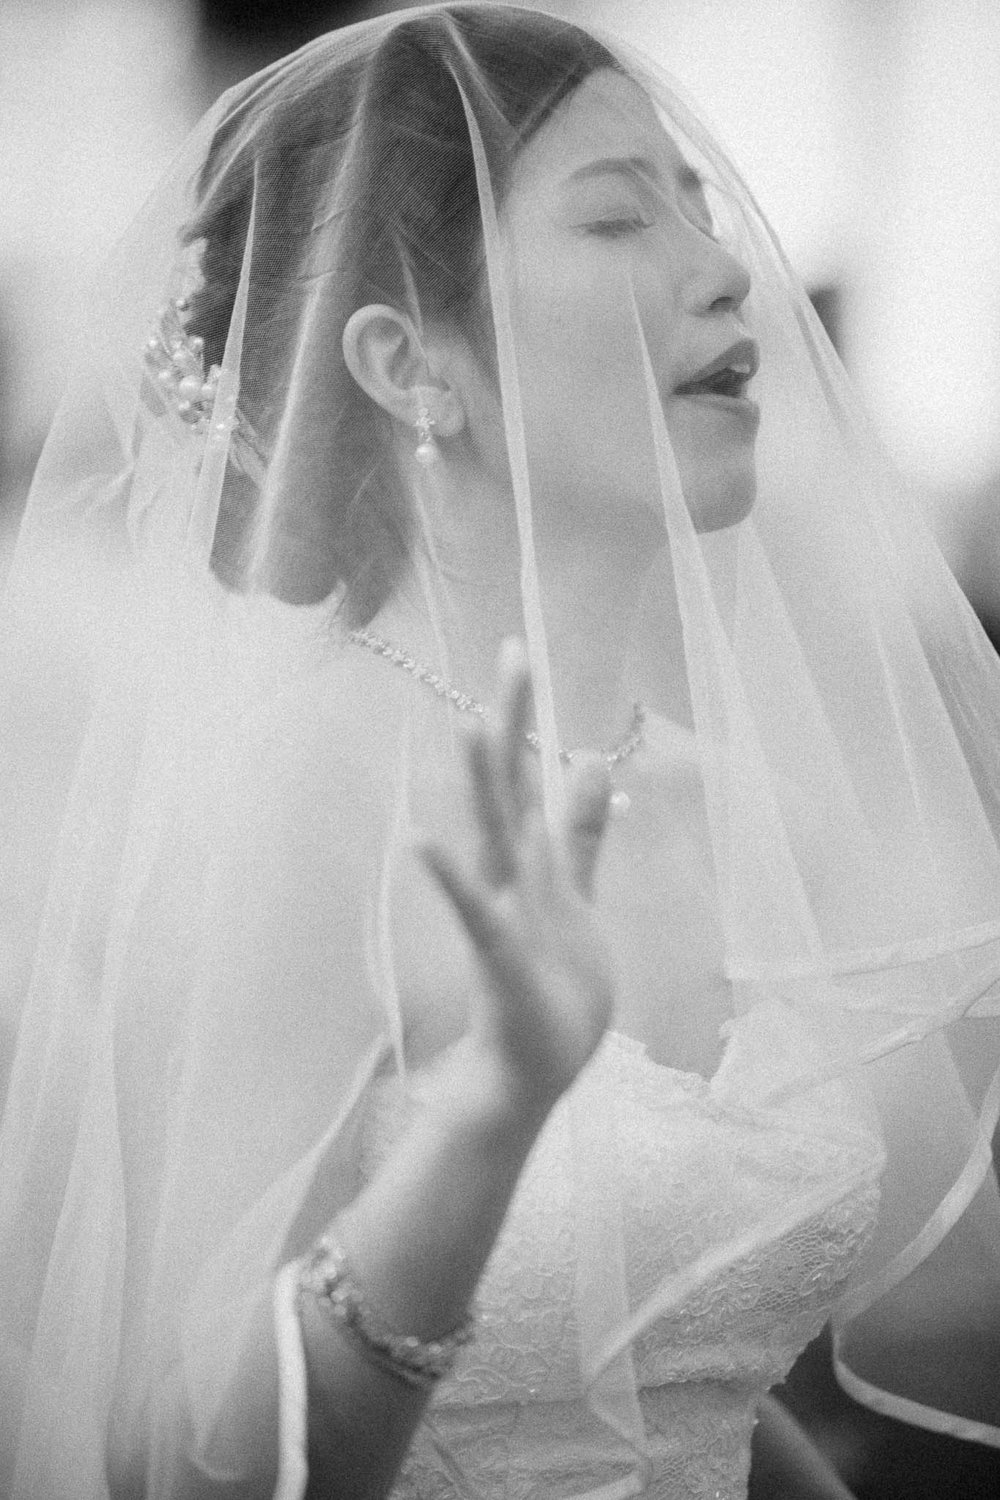 singapore-wedding-photographer-we-made-these-2016-selects-111.jpg